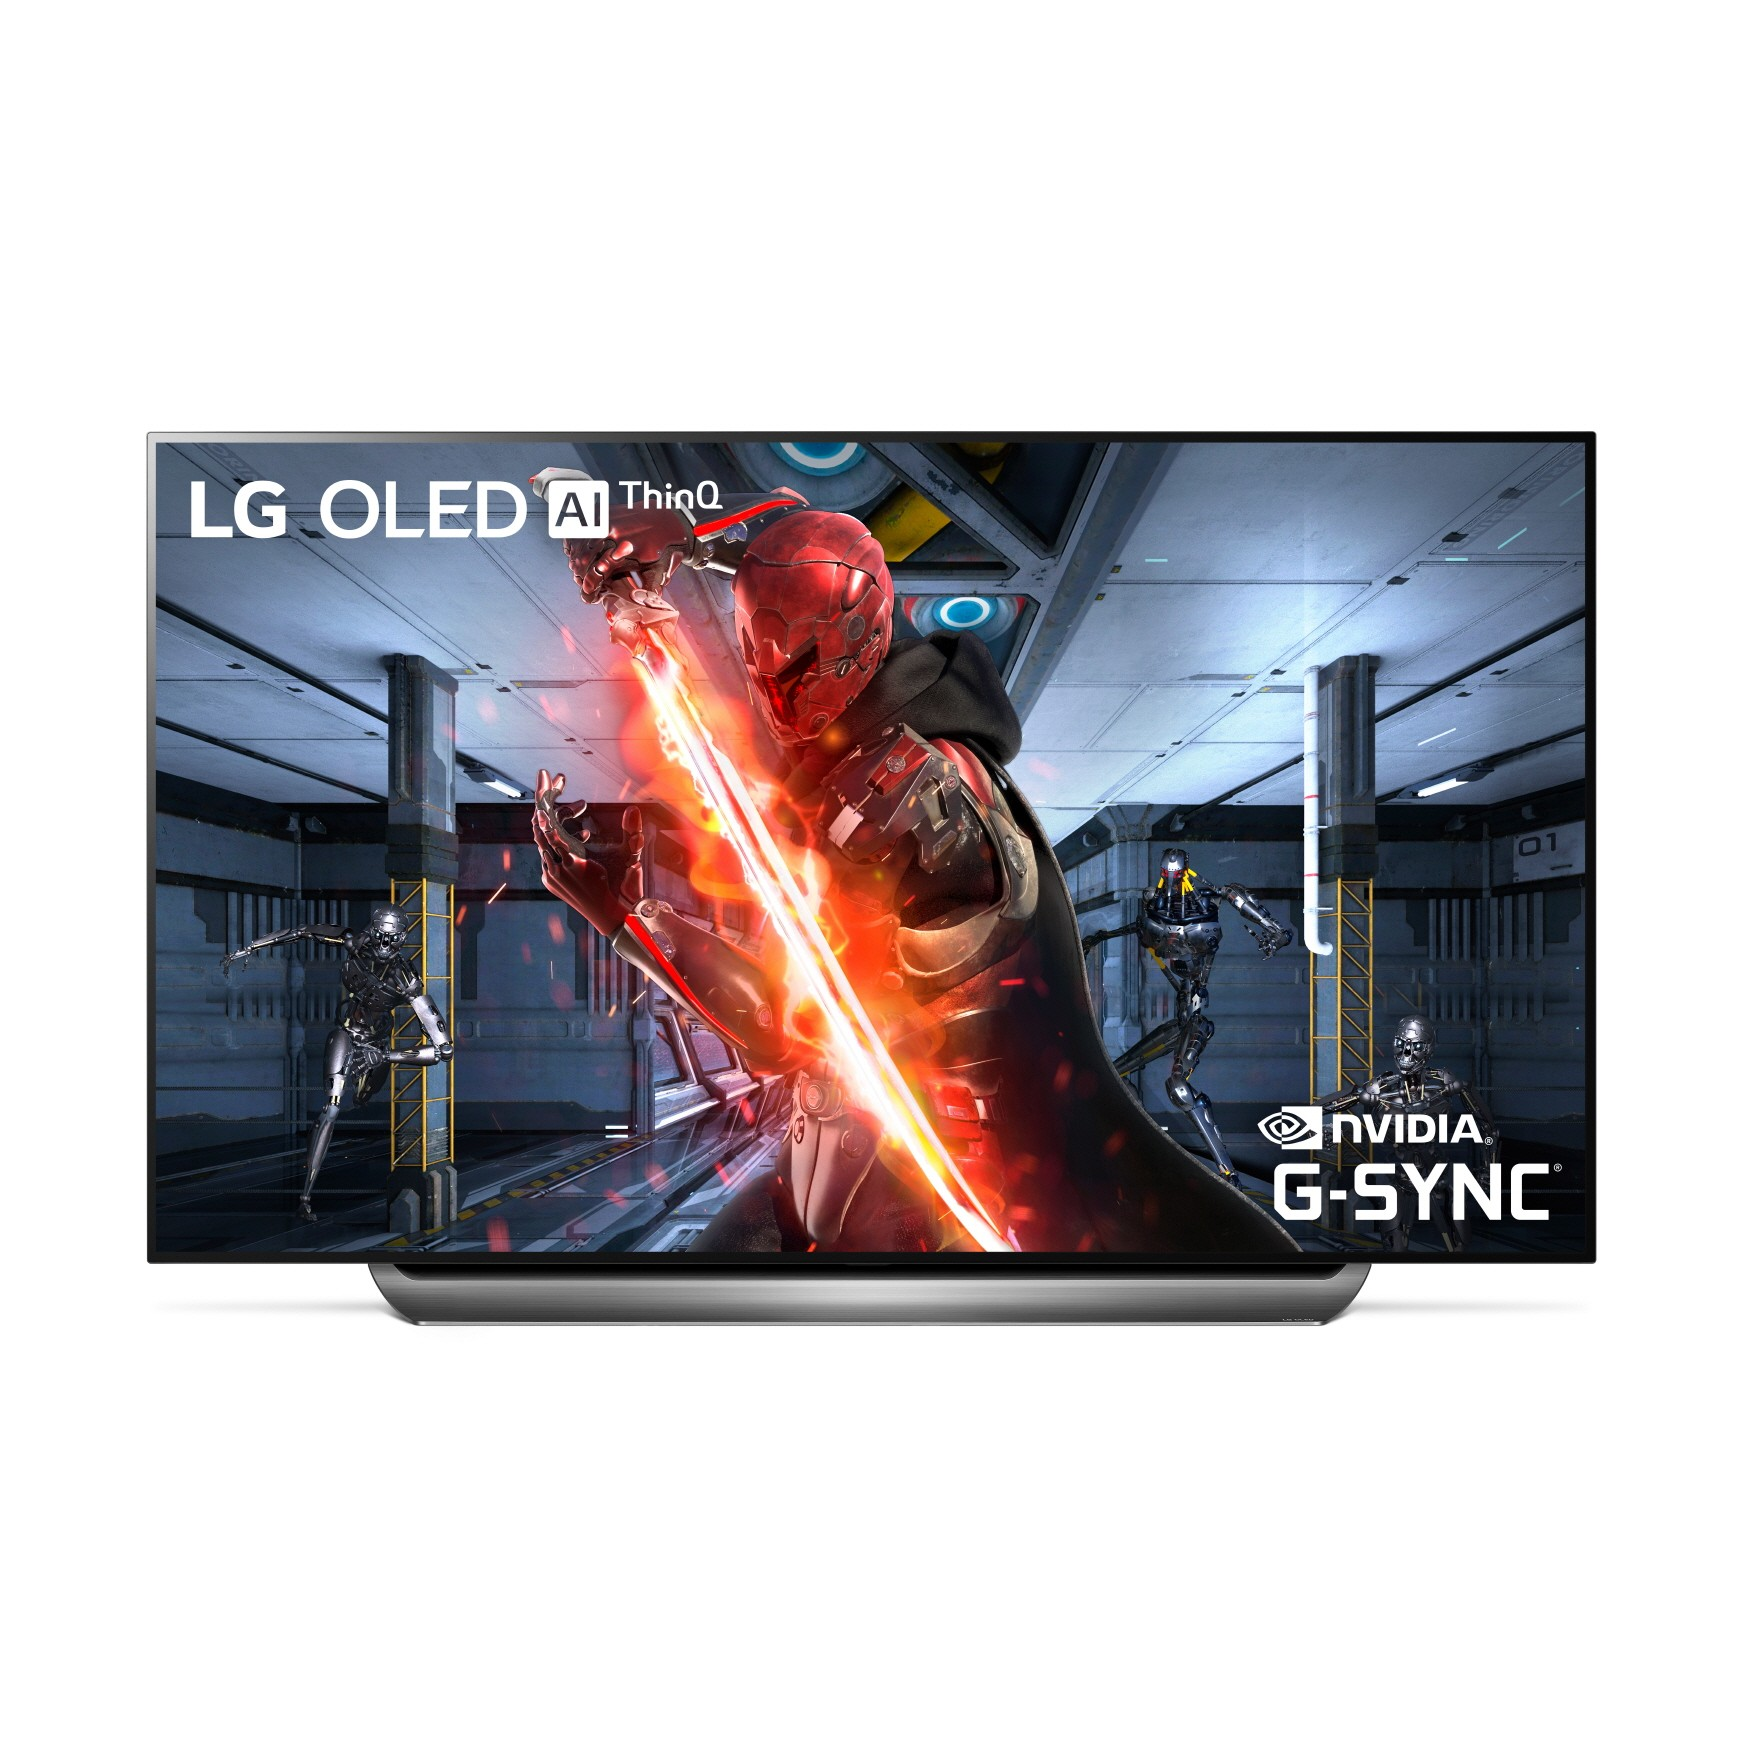 A front view of LG OLED TV with NVIDIA G-SYNC.